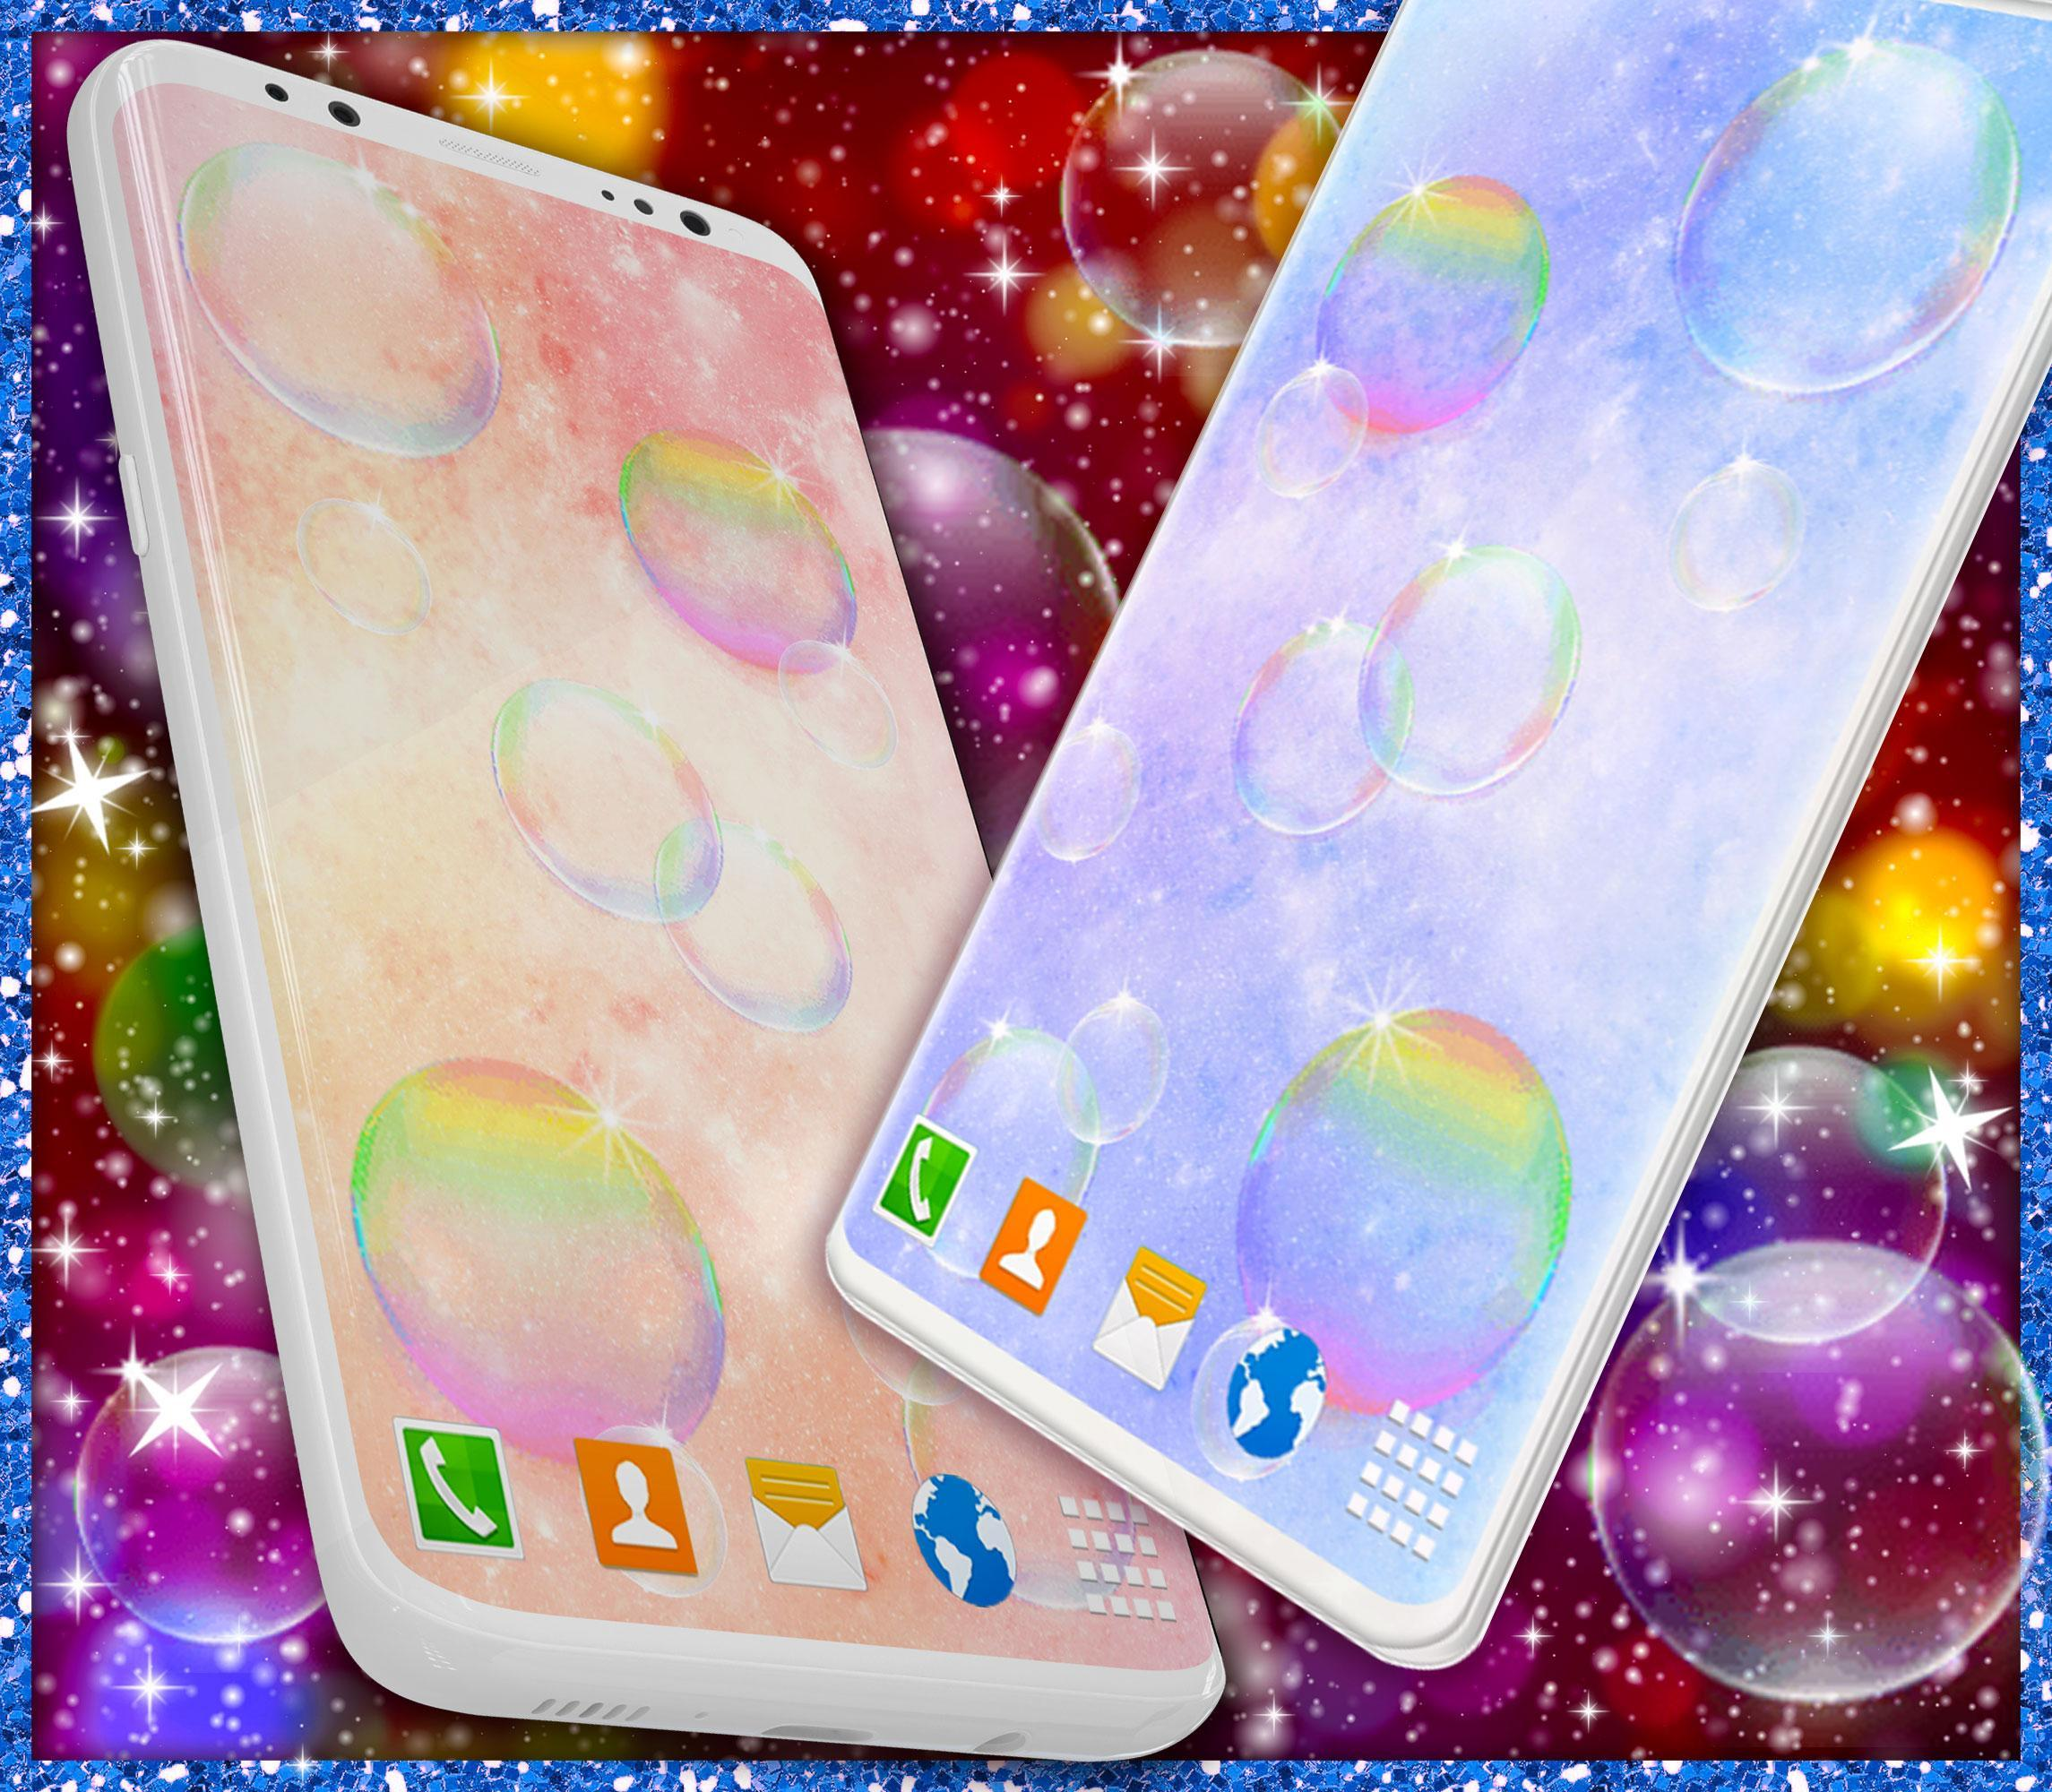 Soap Bubble Live Wallpaper For Android Apk Download